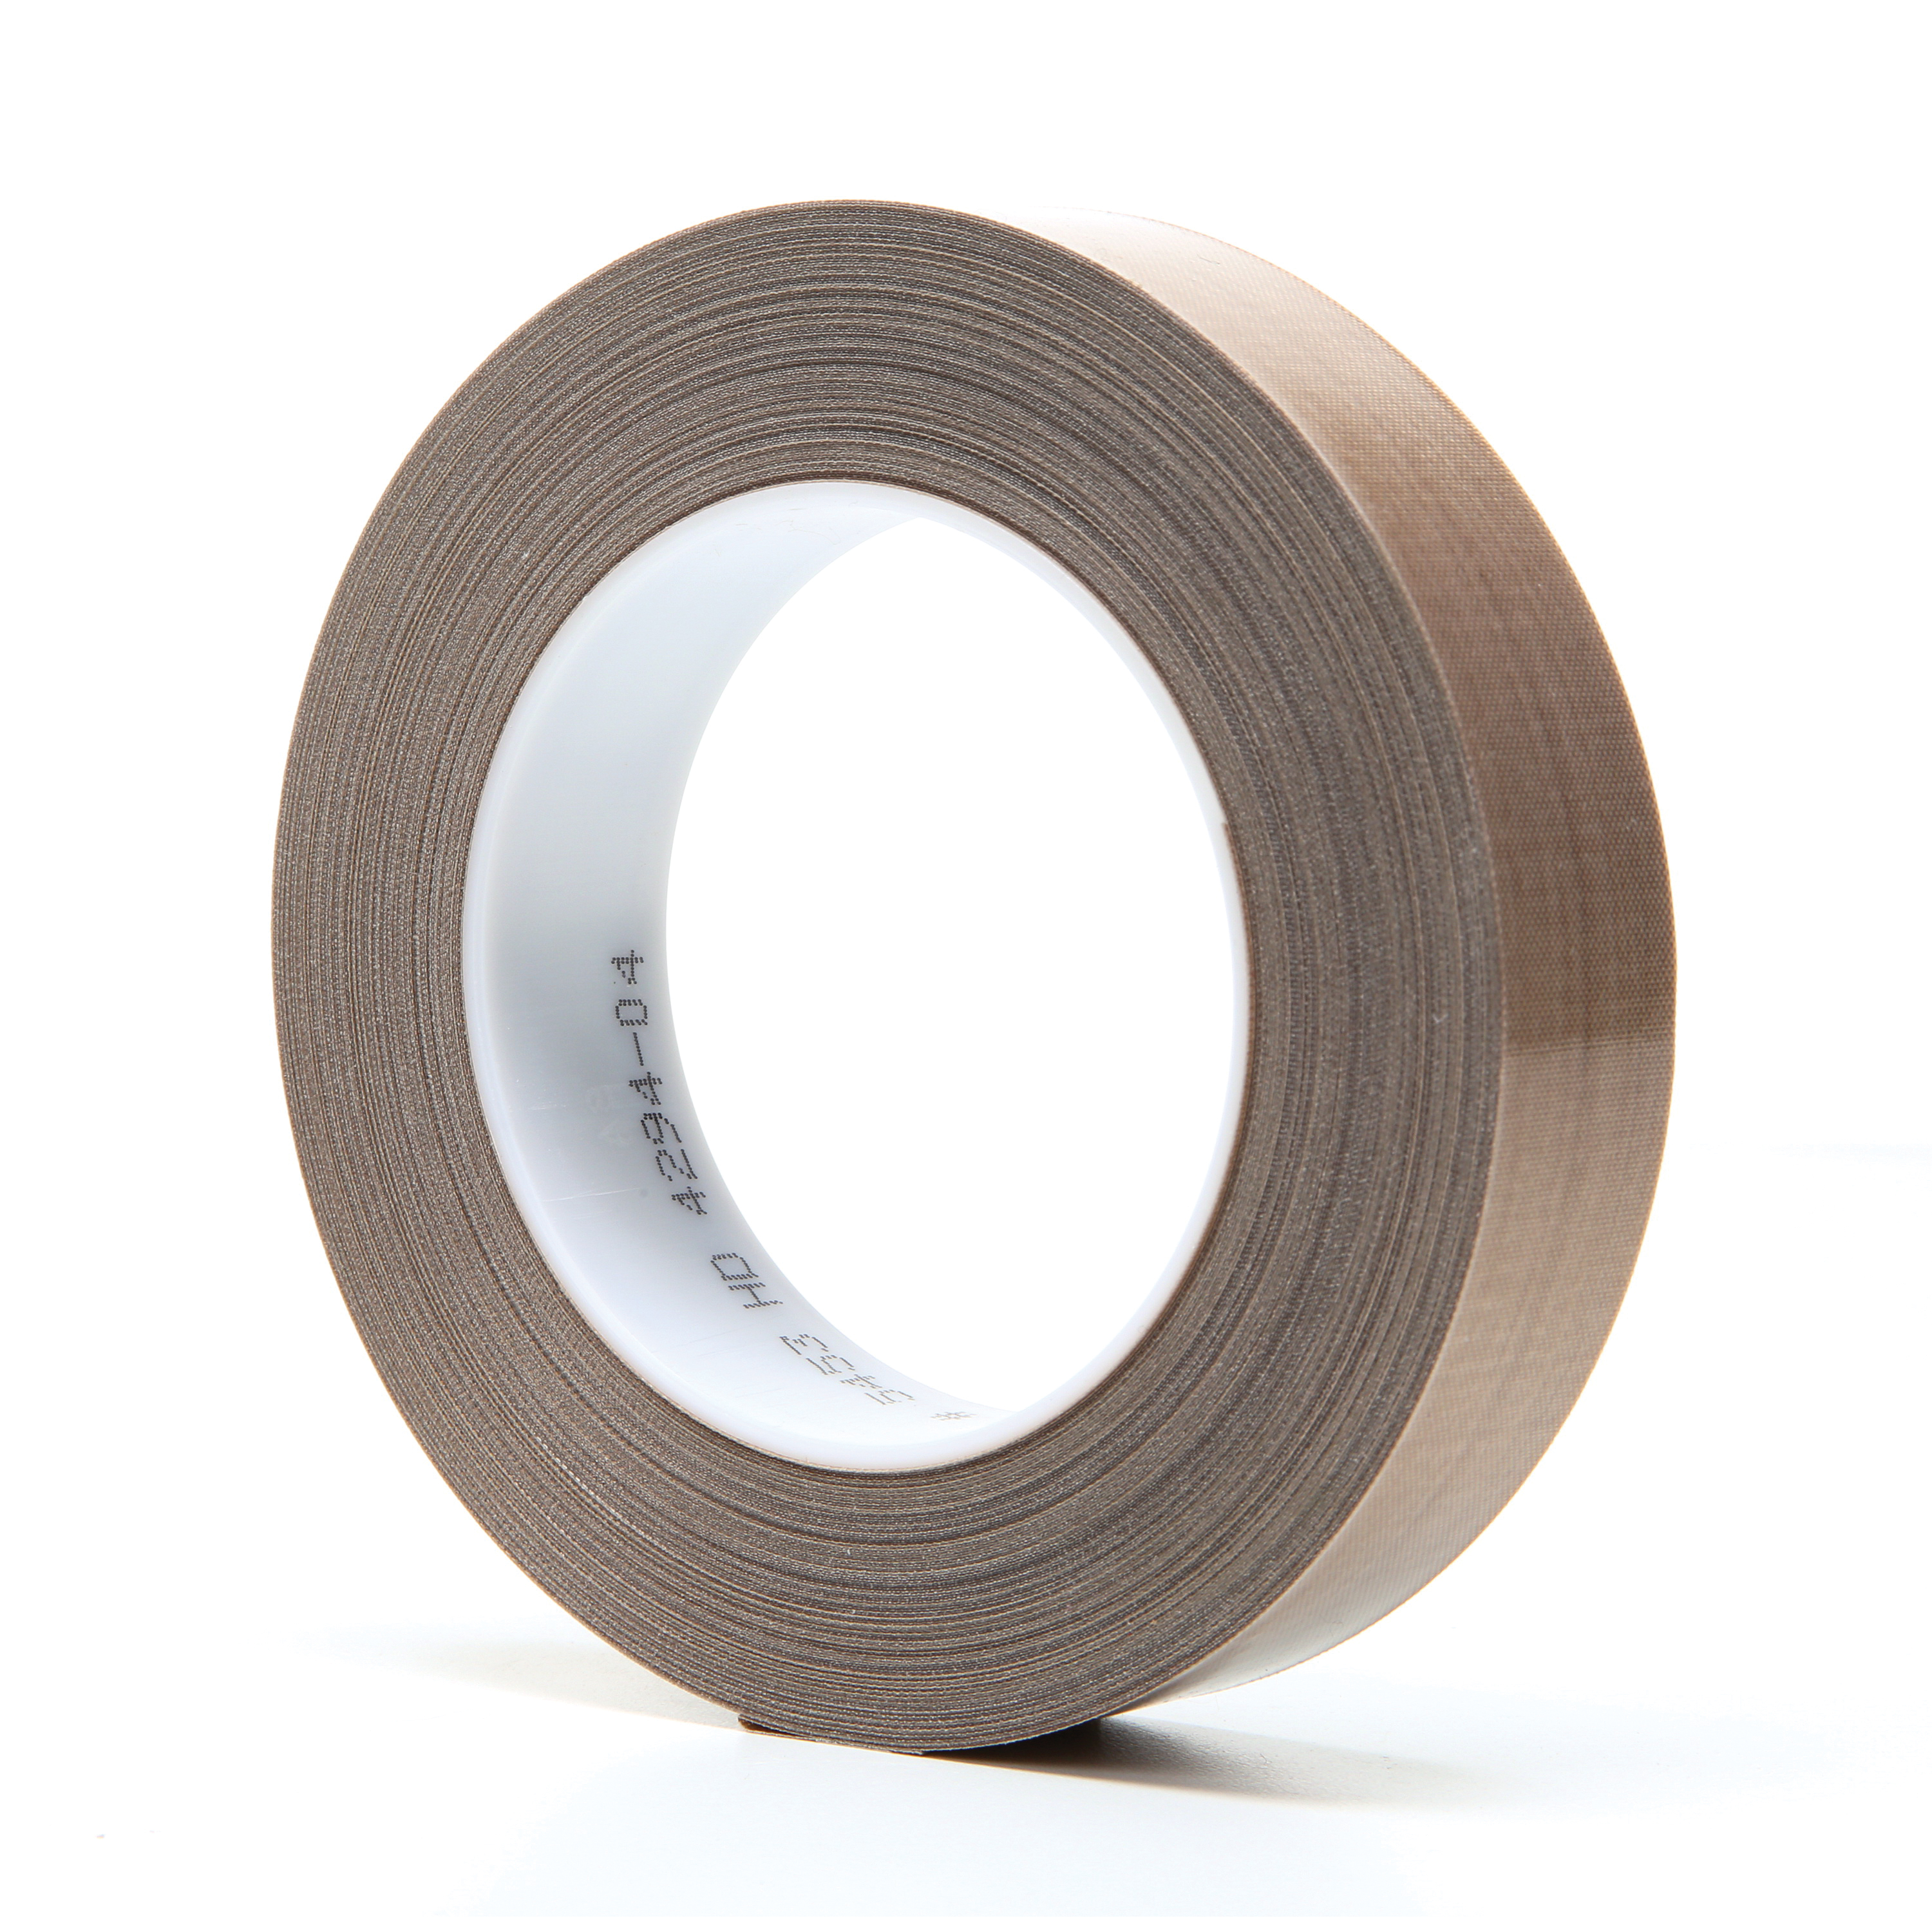 3M™ 021200-16160 Pressure Sensitive Glass Cloth Tape, 36 yd L x 1 in W, 8.2 mil THK, Silicon Adhesive, Woven Glass Cloth Impregnated with PTFE Backing, Brown